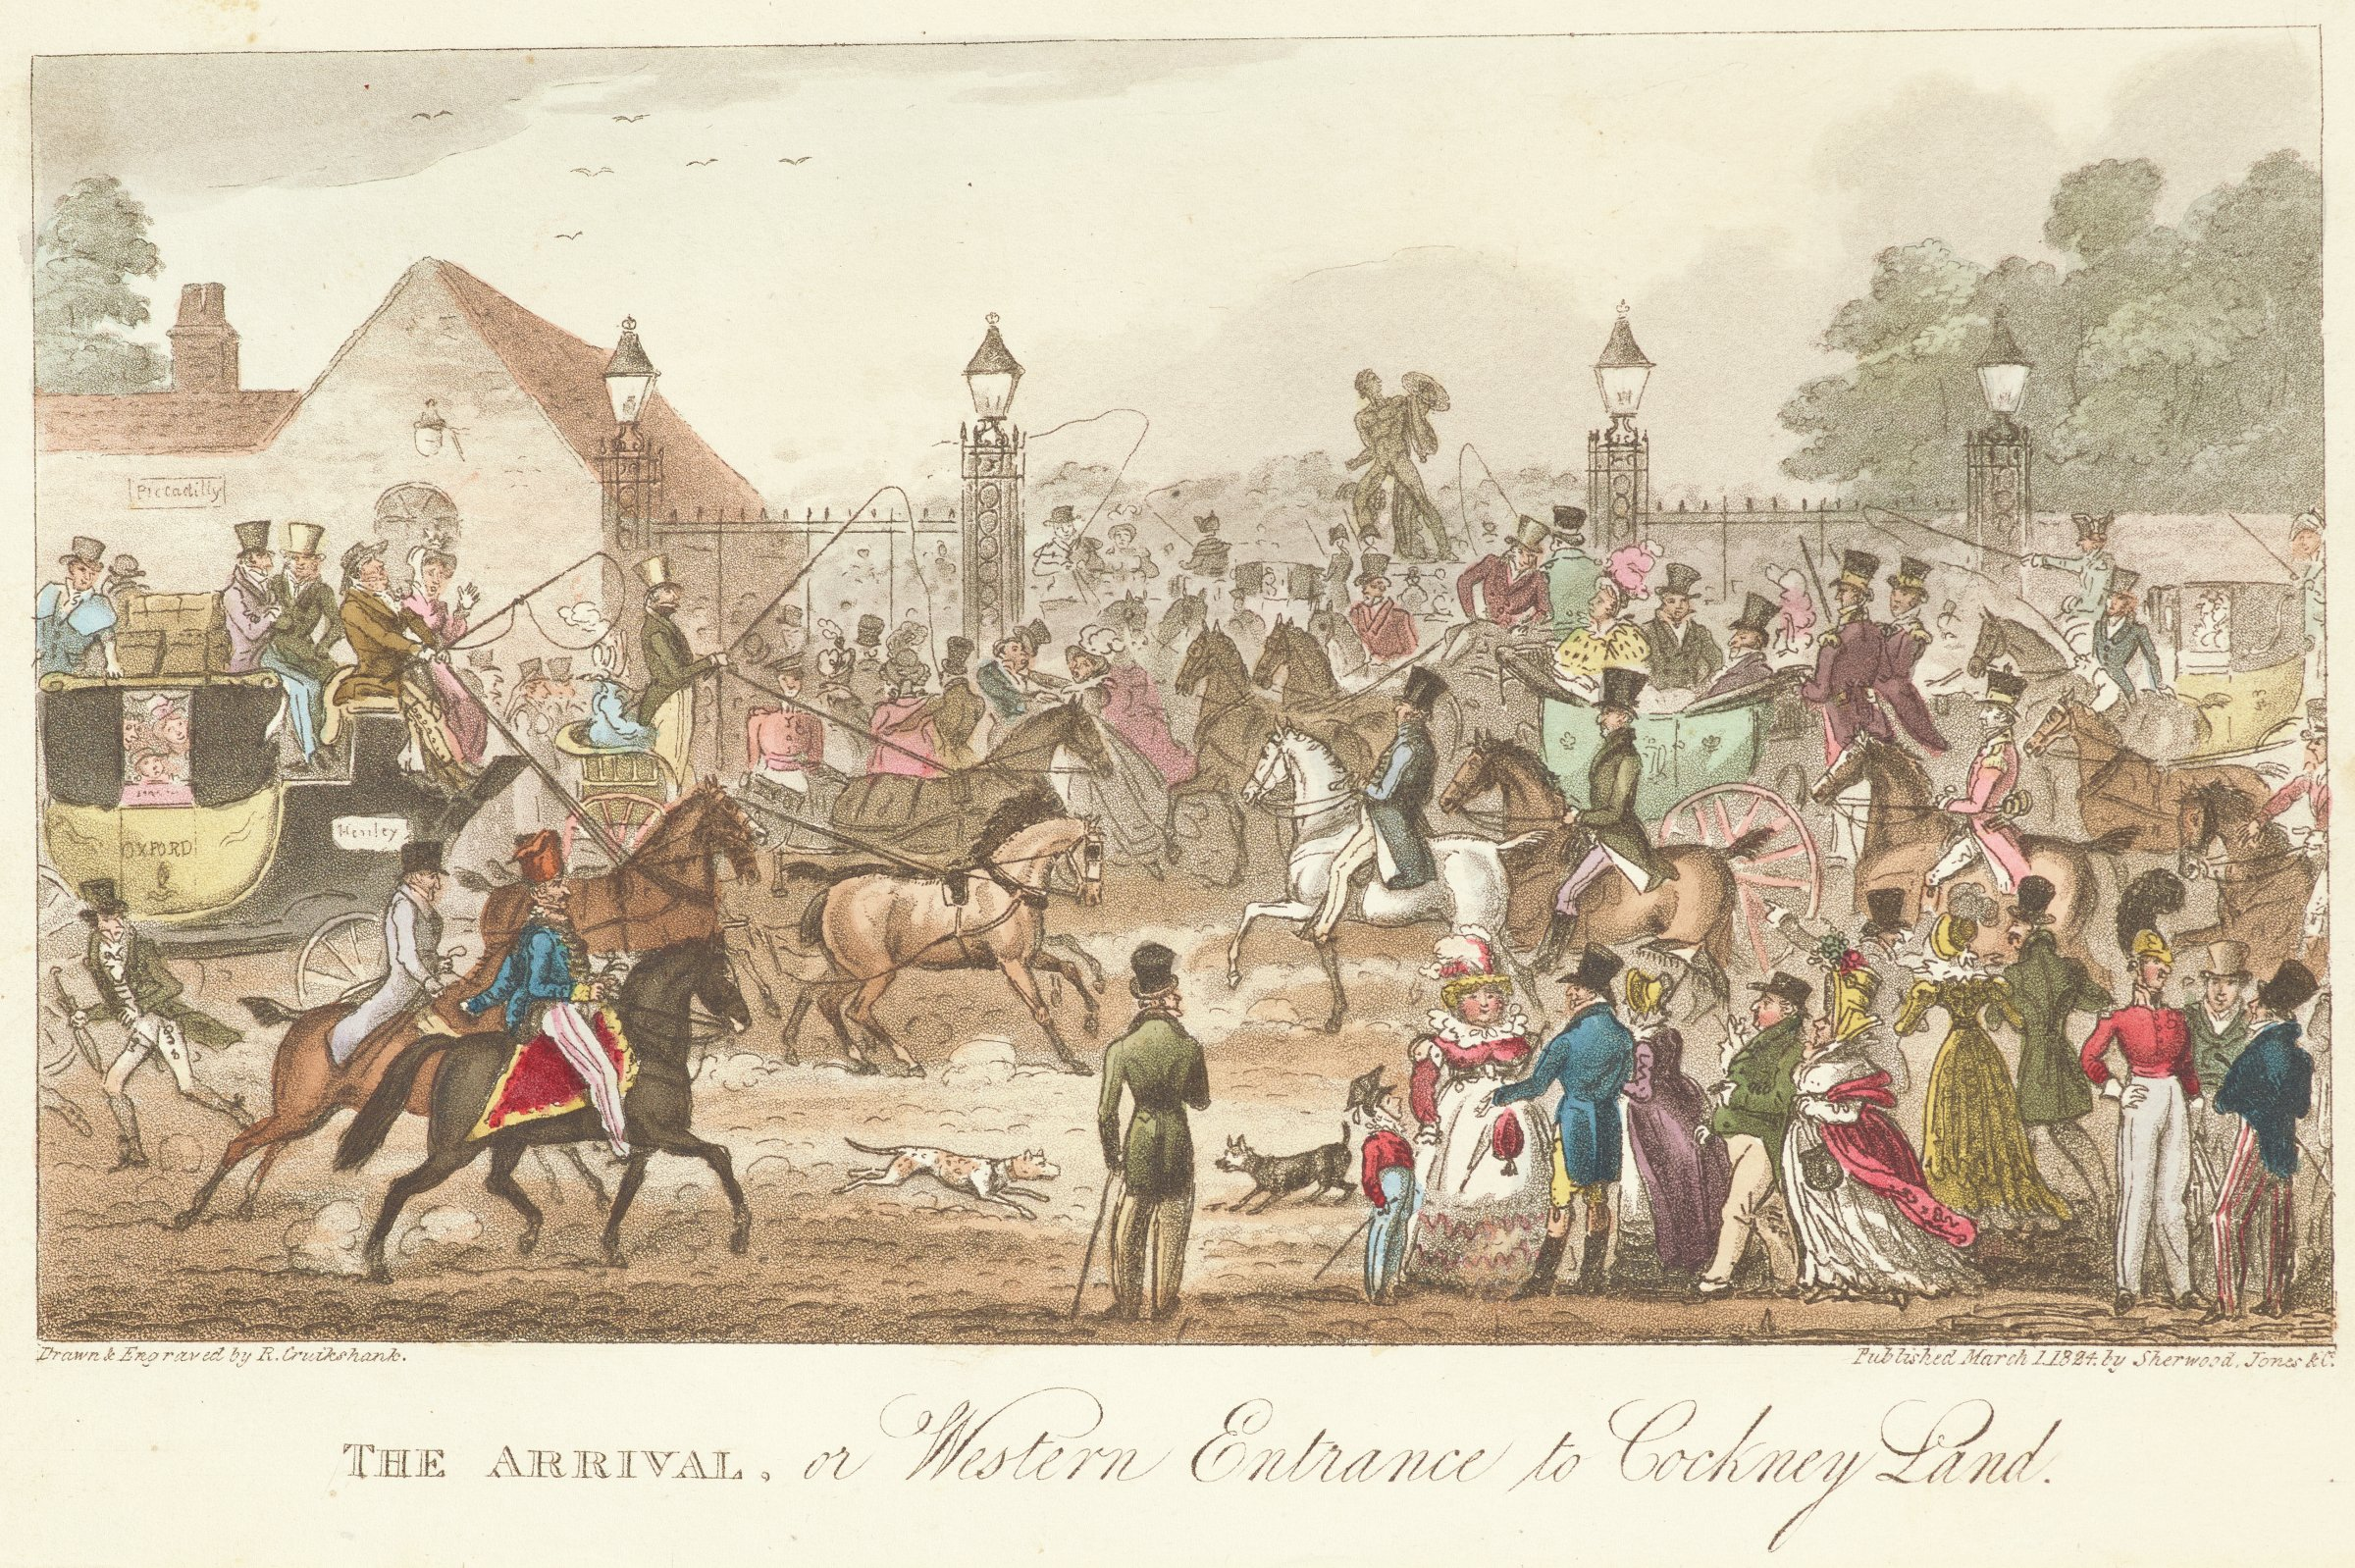 Crowded scene of ladies, gentlemen, and horses in front of a gated entrance beyond which there are more crowds of people.